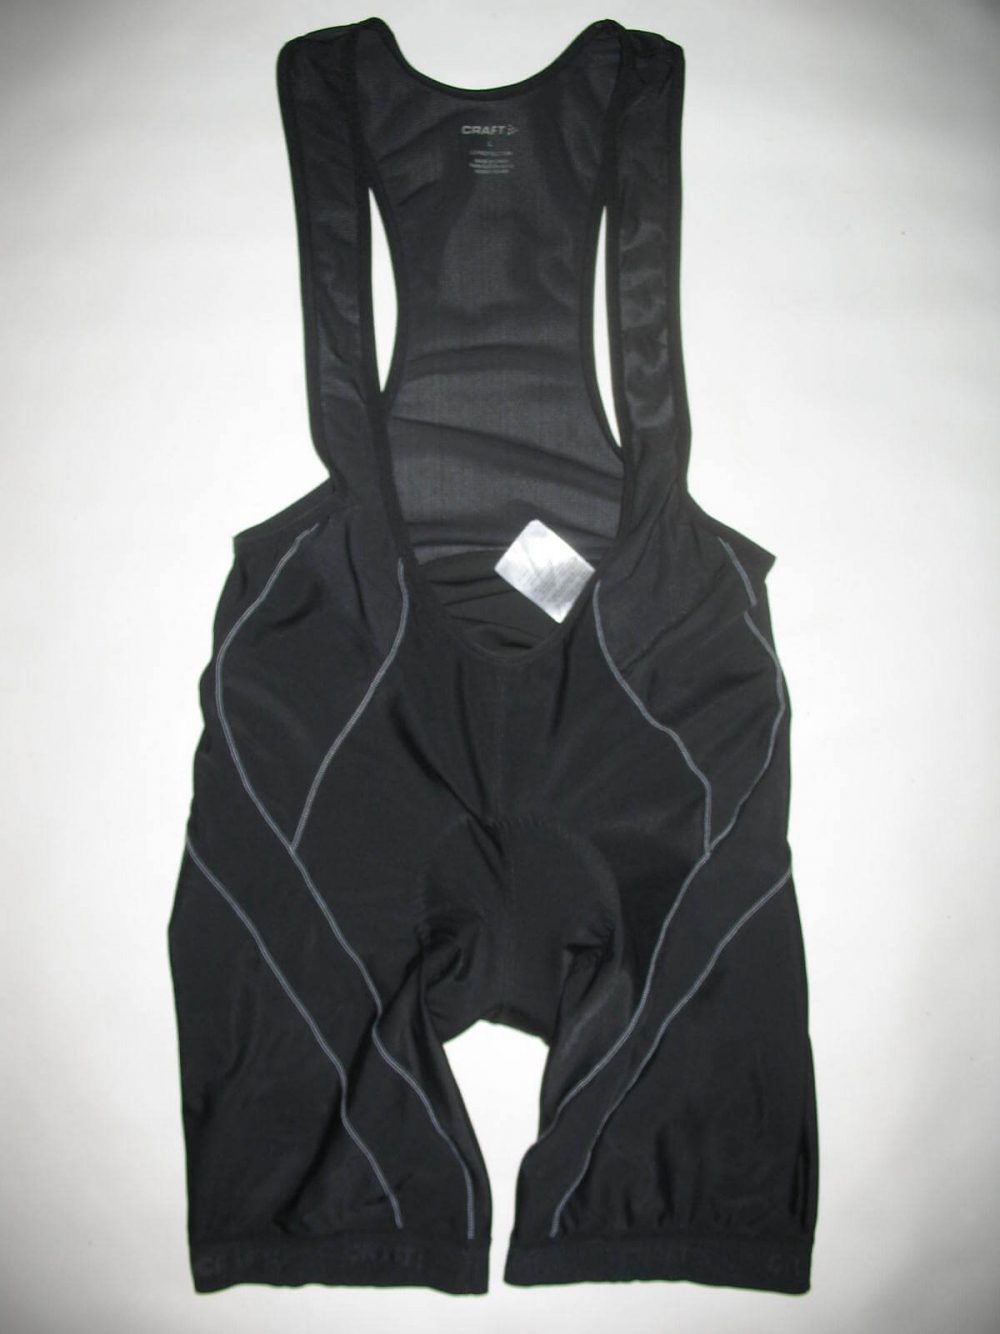 Велошорты CRAFT cycling bib shorts (размер L) - 1